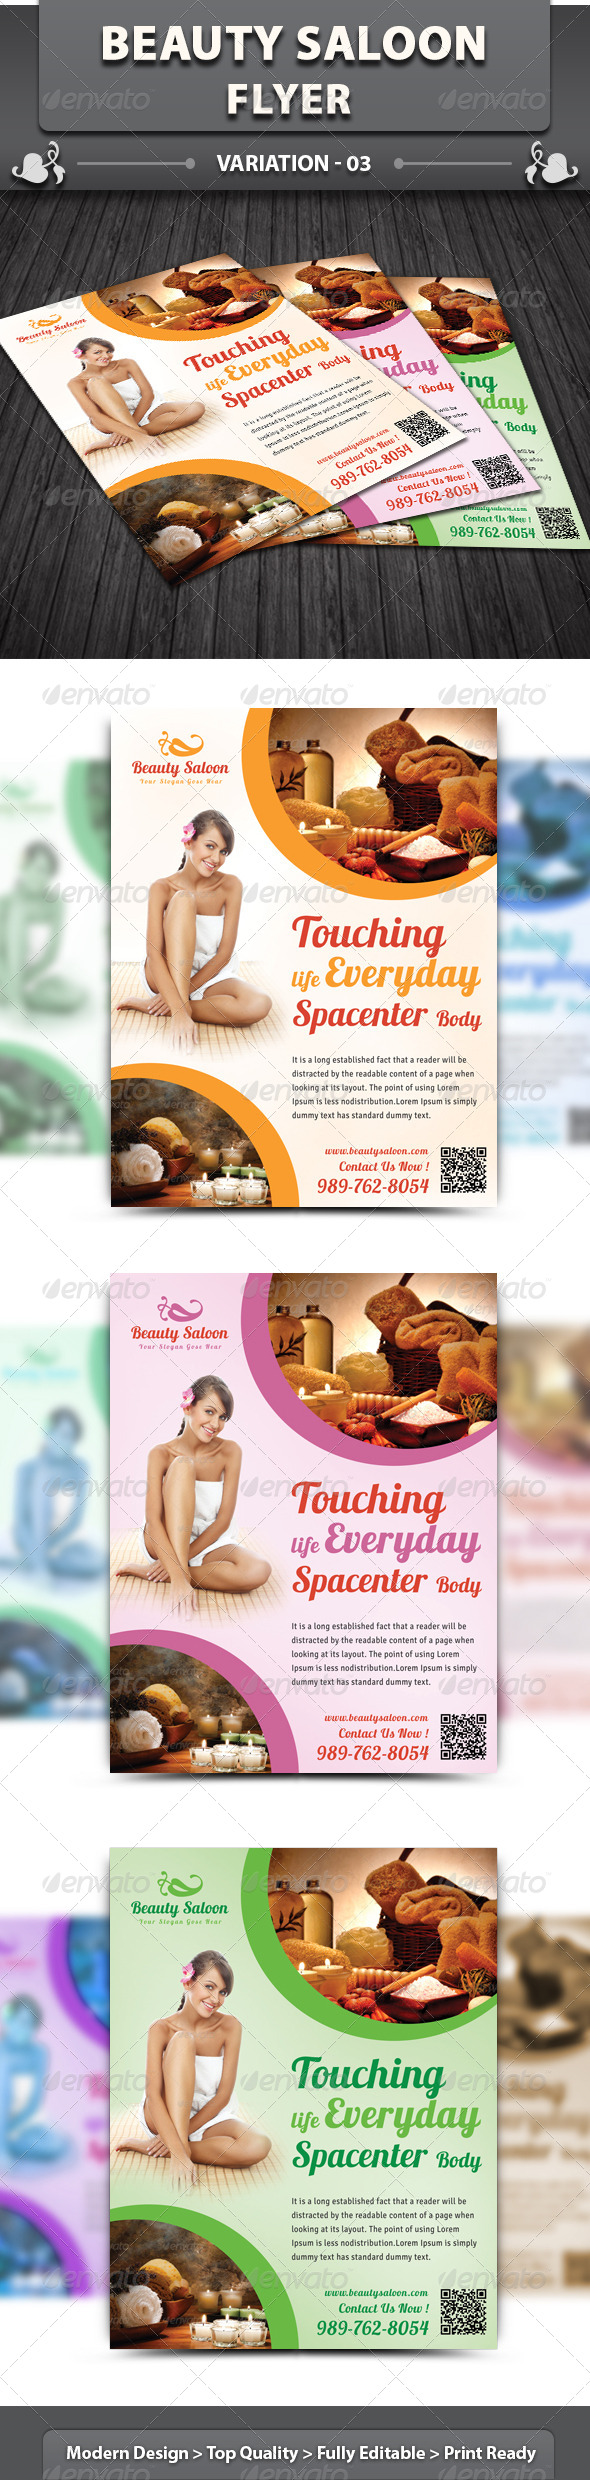 Spa & Beauty Saloon Flyer | Volume 3 - Corporate Flyers